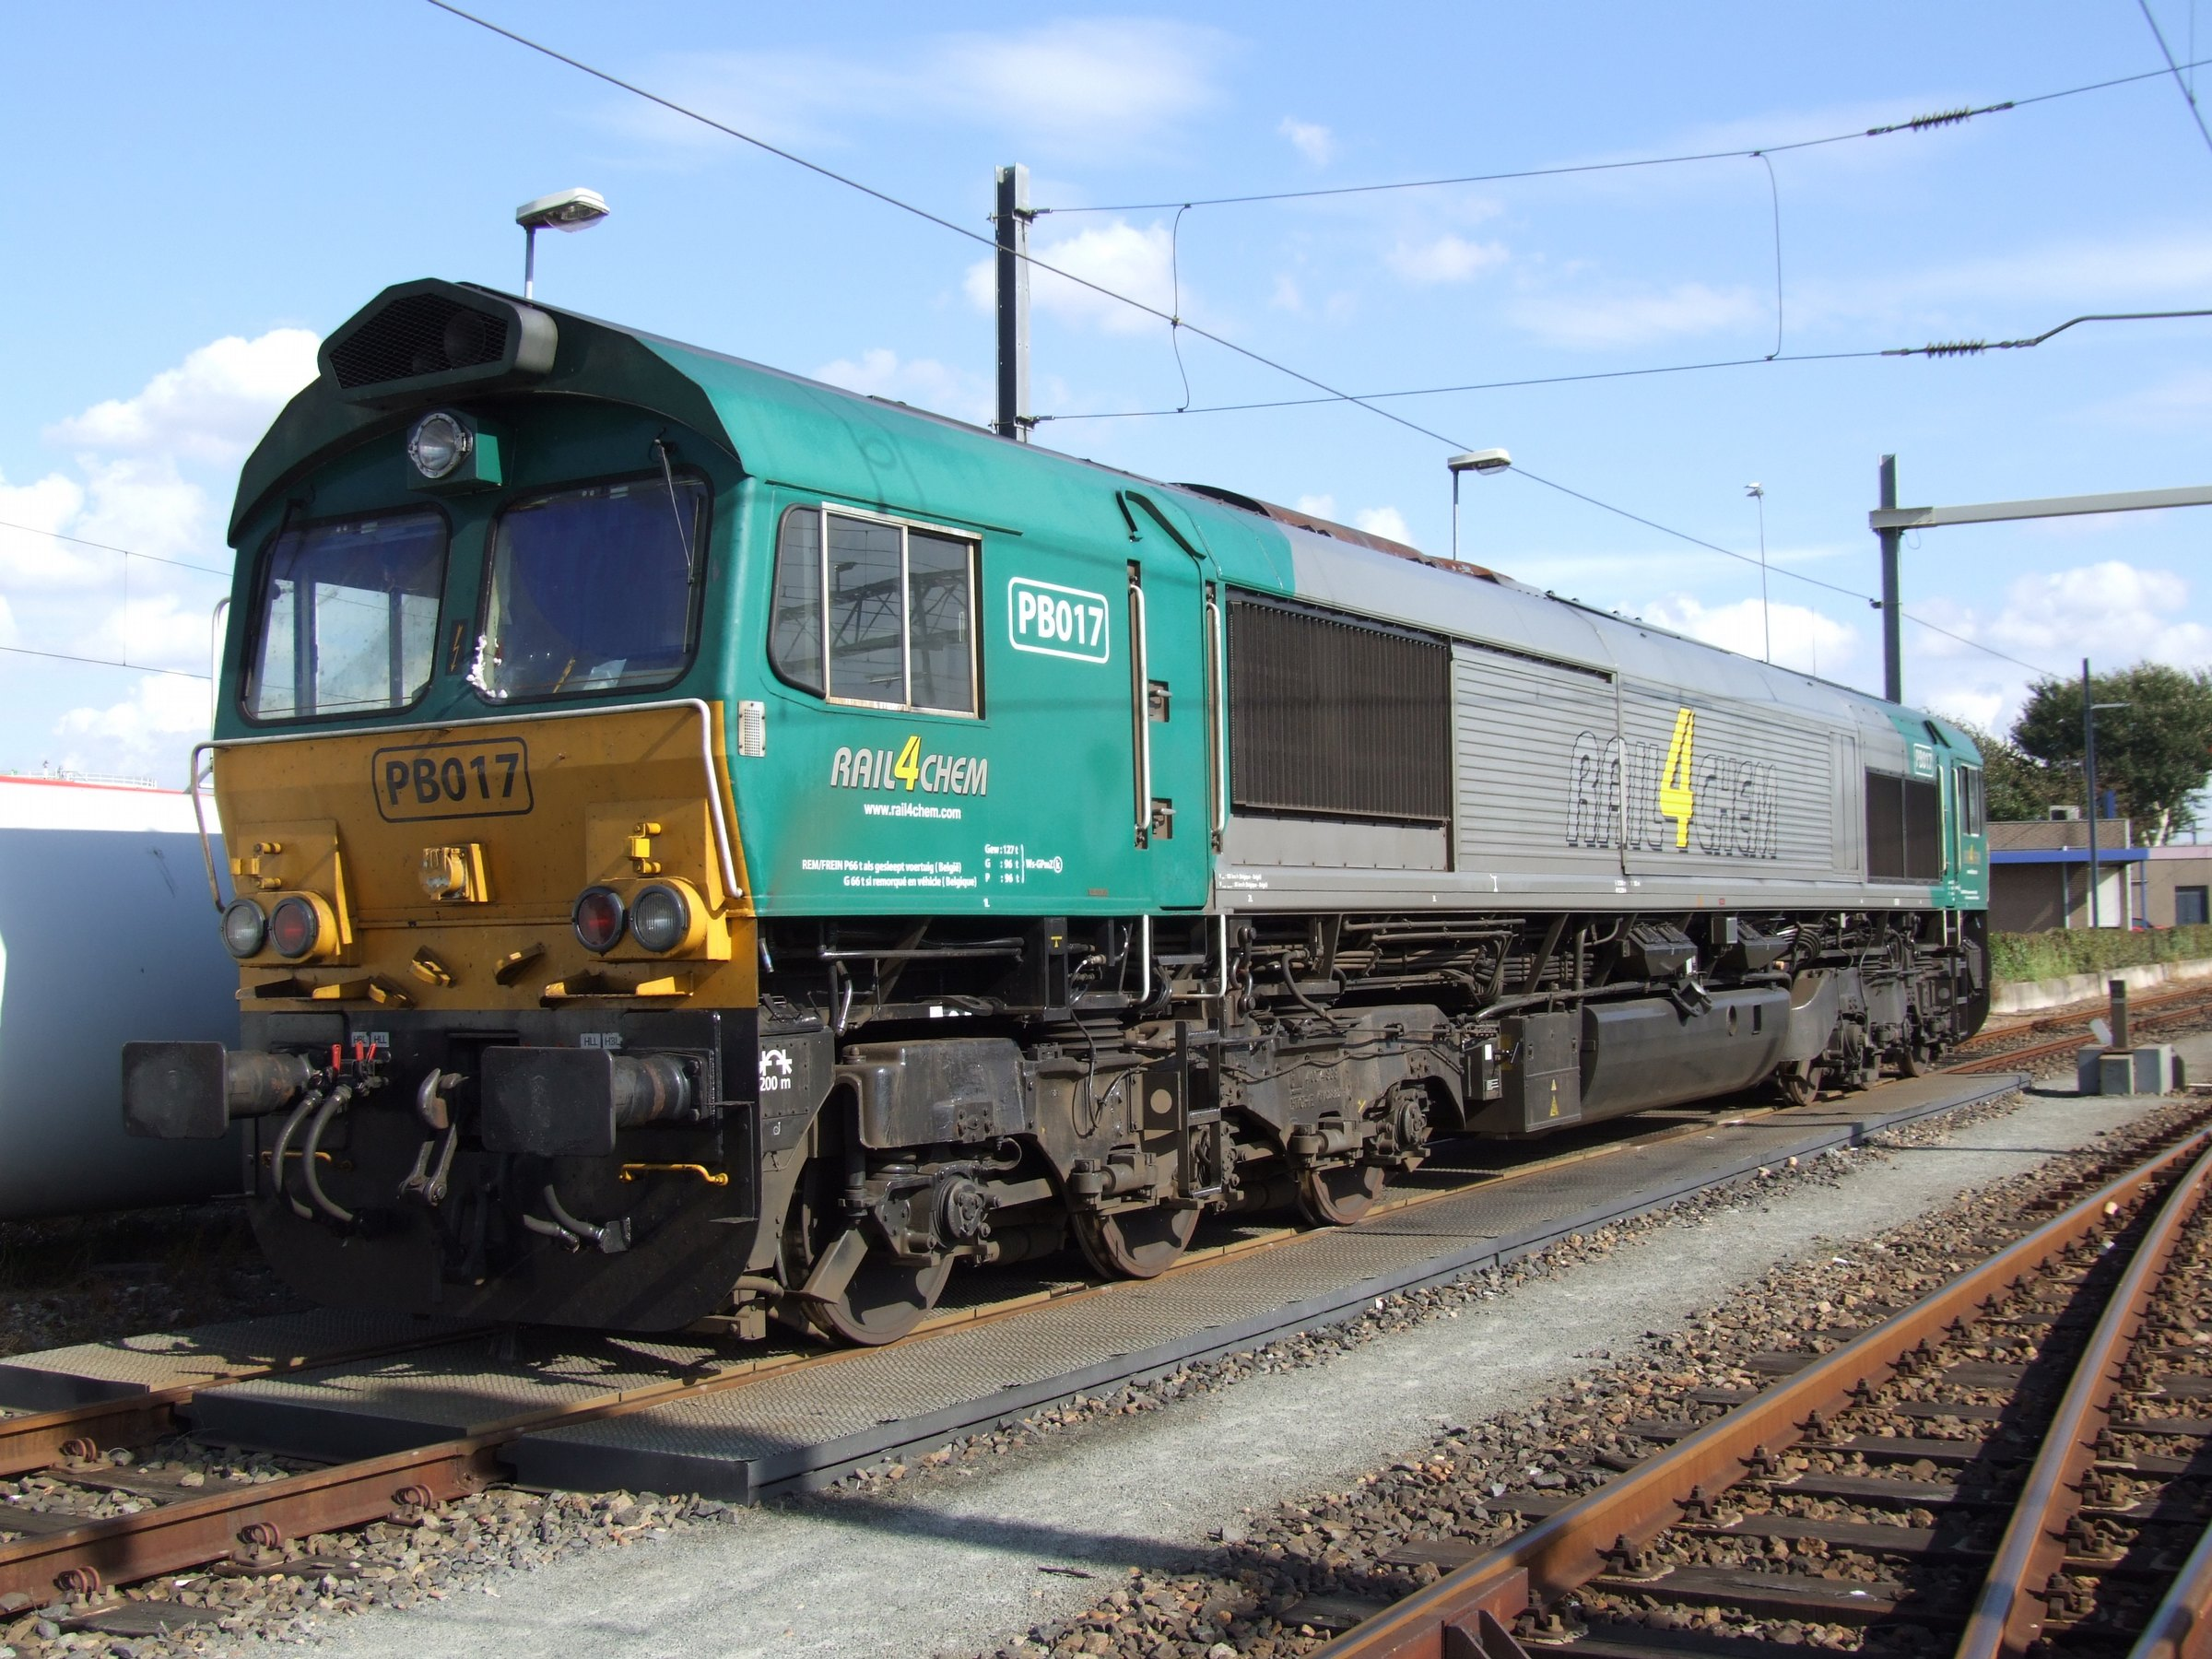 Electro Motive Diesel >> File General Motors Electro Motive Diesel Class 66 Pb017 Jpg